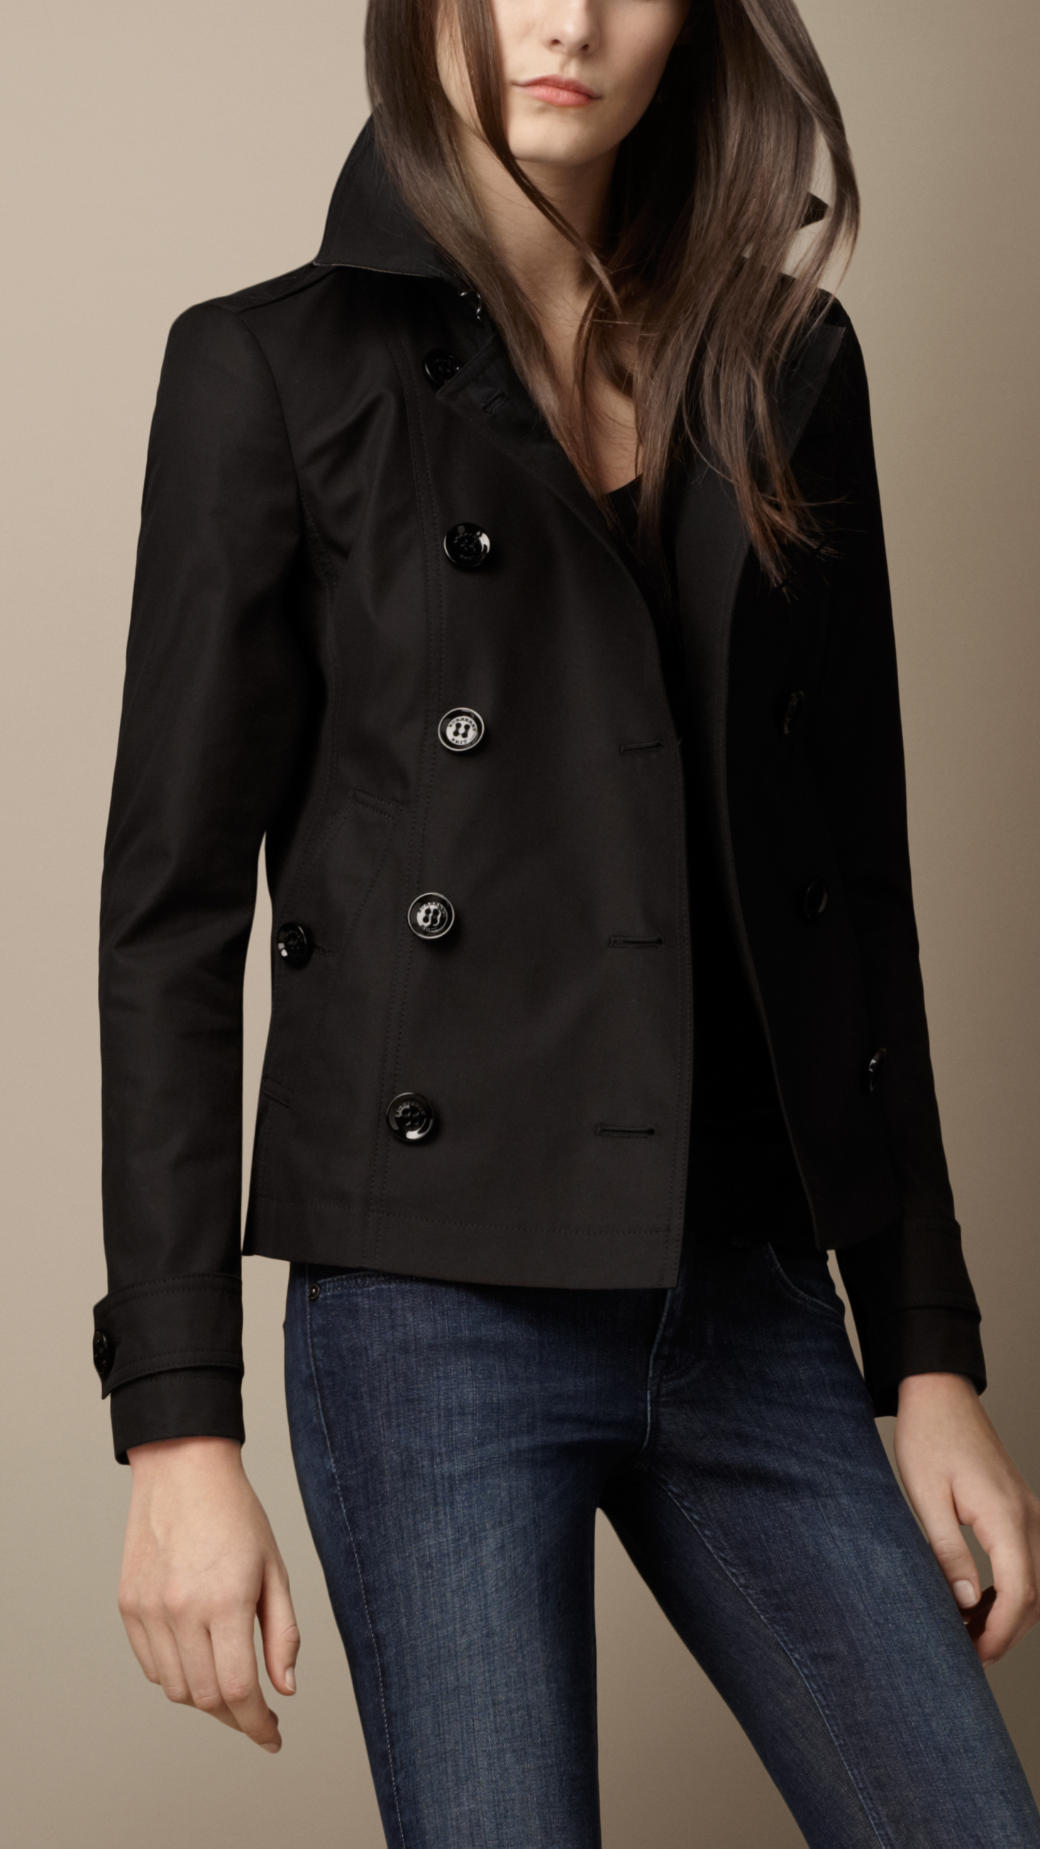 Short Trench Coat: The length of these coats reaches a little bit above the hips and is advisable for women with short stature since the short trenches make them visually tall and just on the contrary tall women should shy away from wearing short trench coats to whatever extent is possible. However, if you are of short height with broad hips.